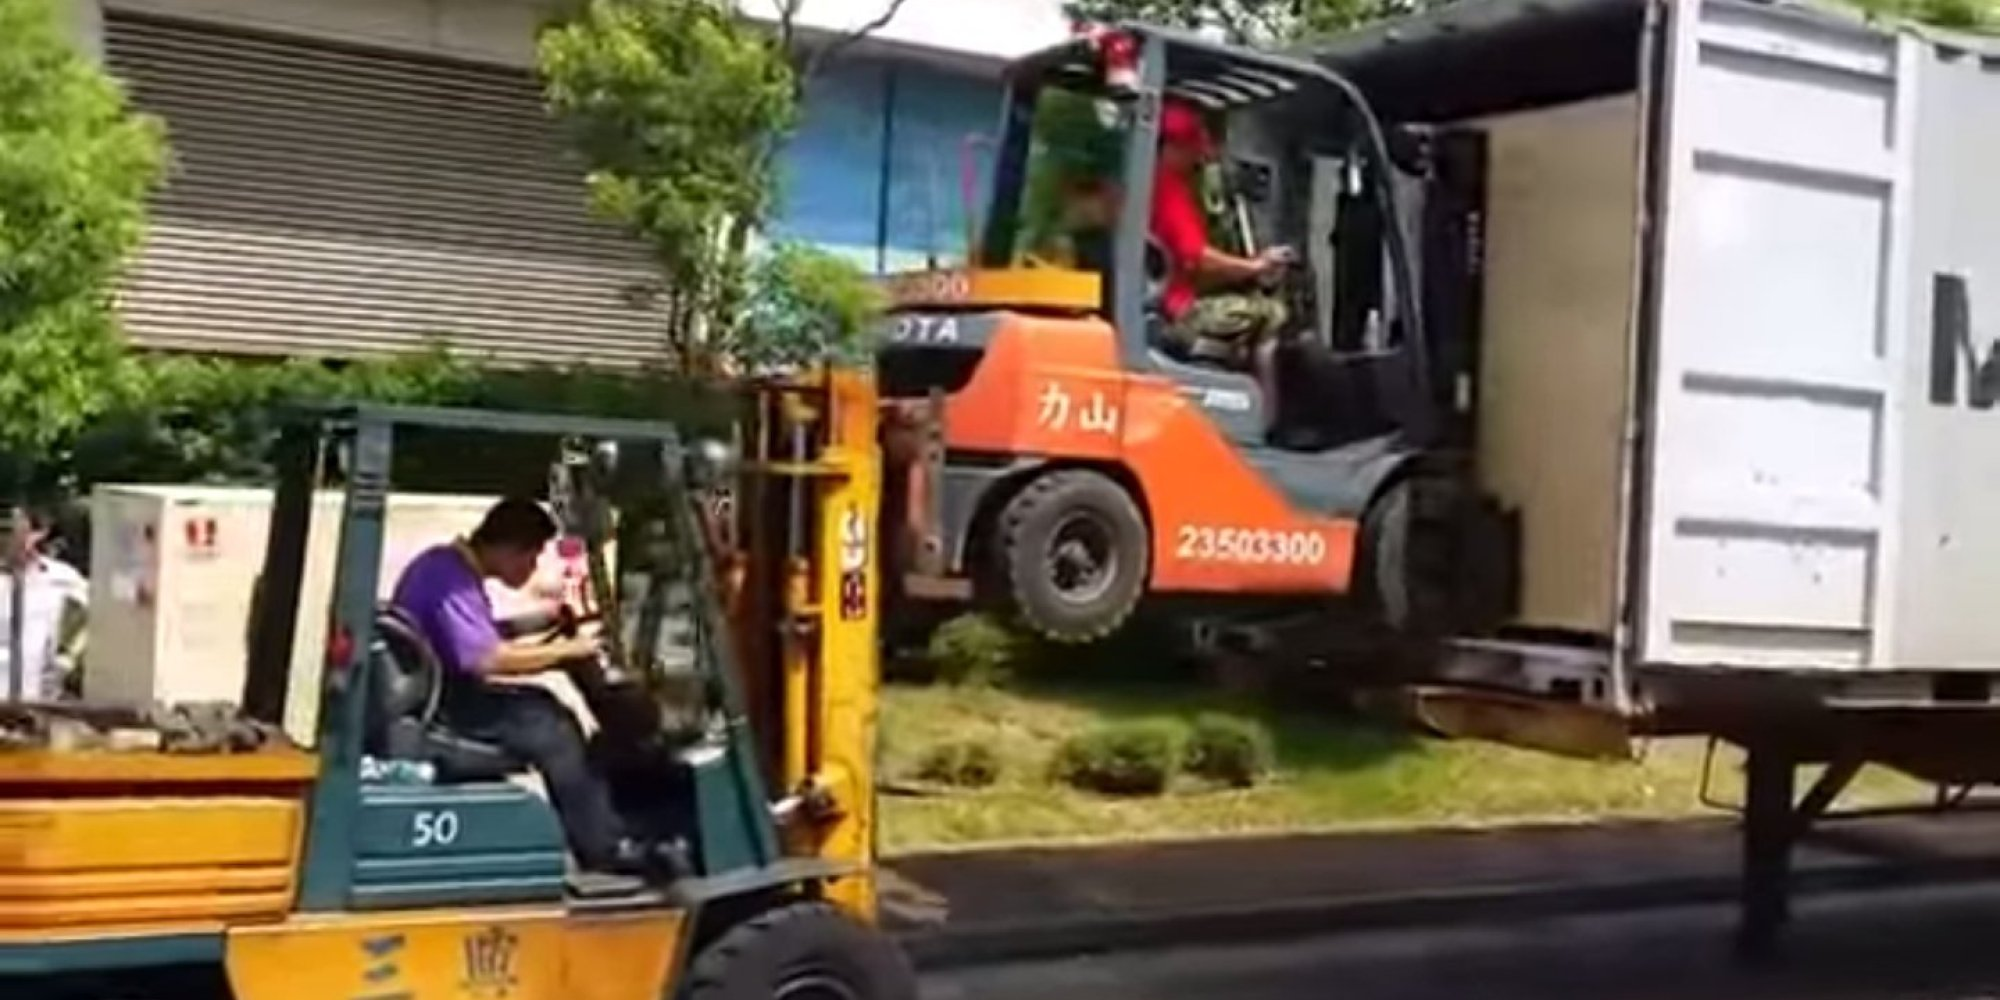 Just A Forklift Forklifting A Forklift Forklifting A Package